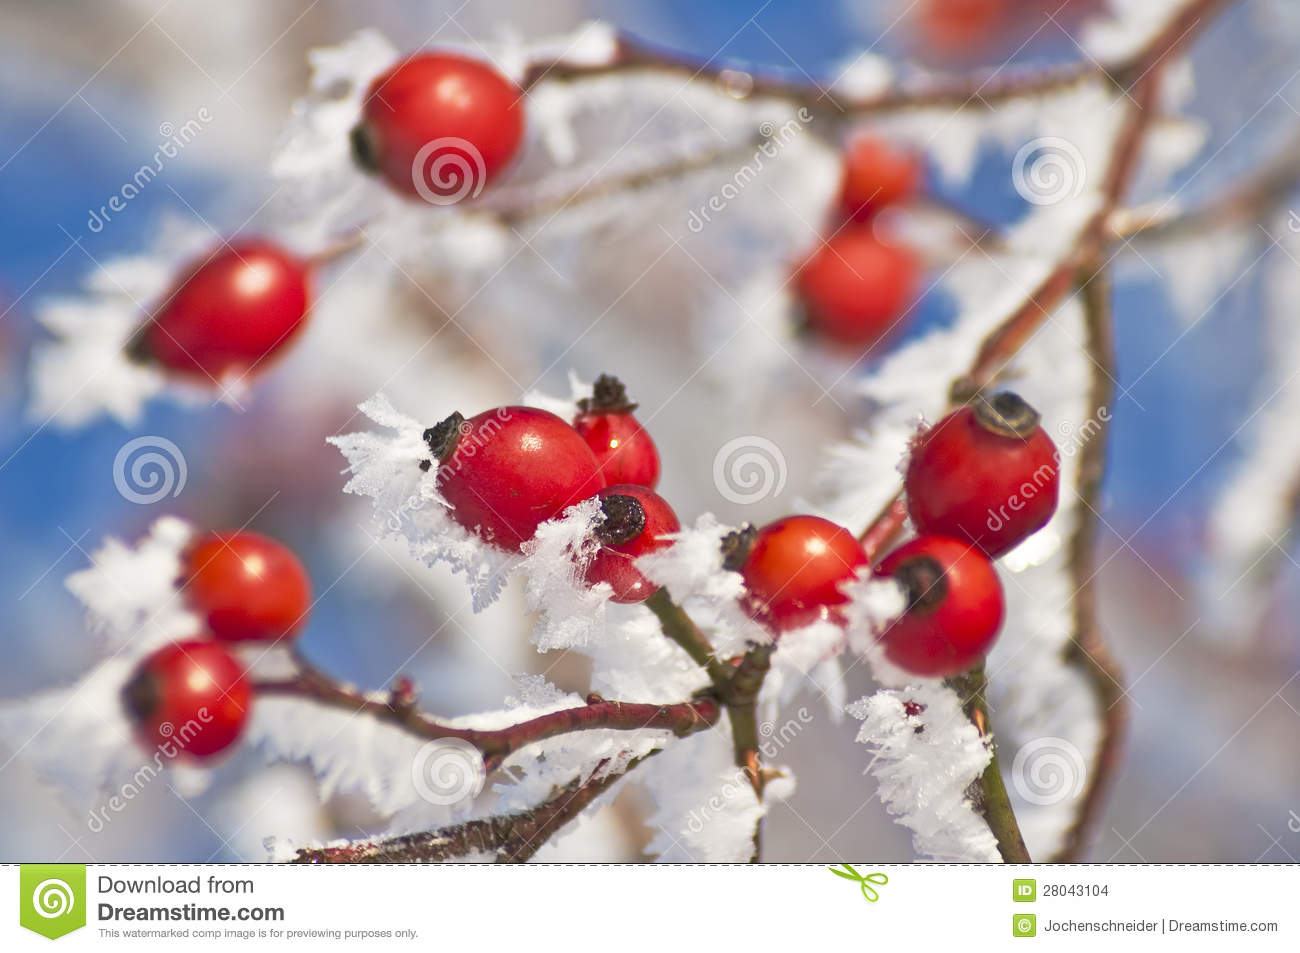 Rose hip with ice crystals